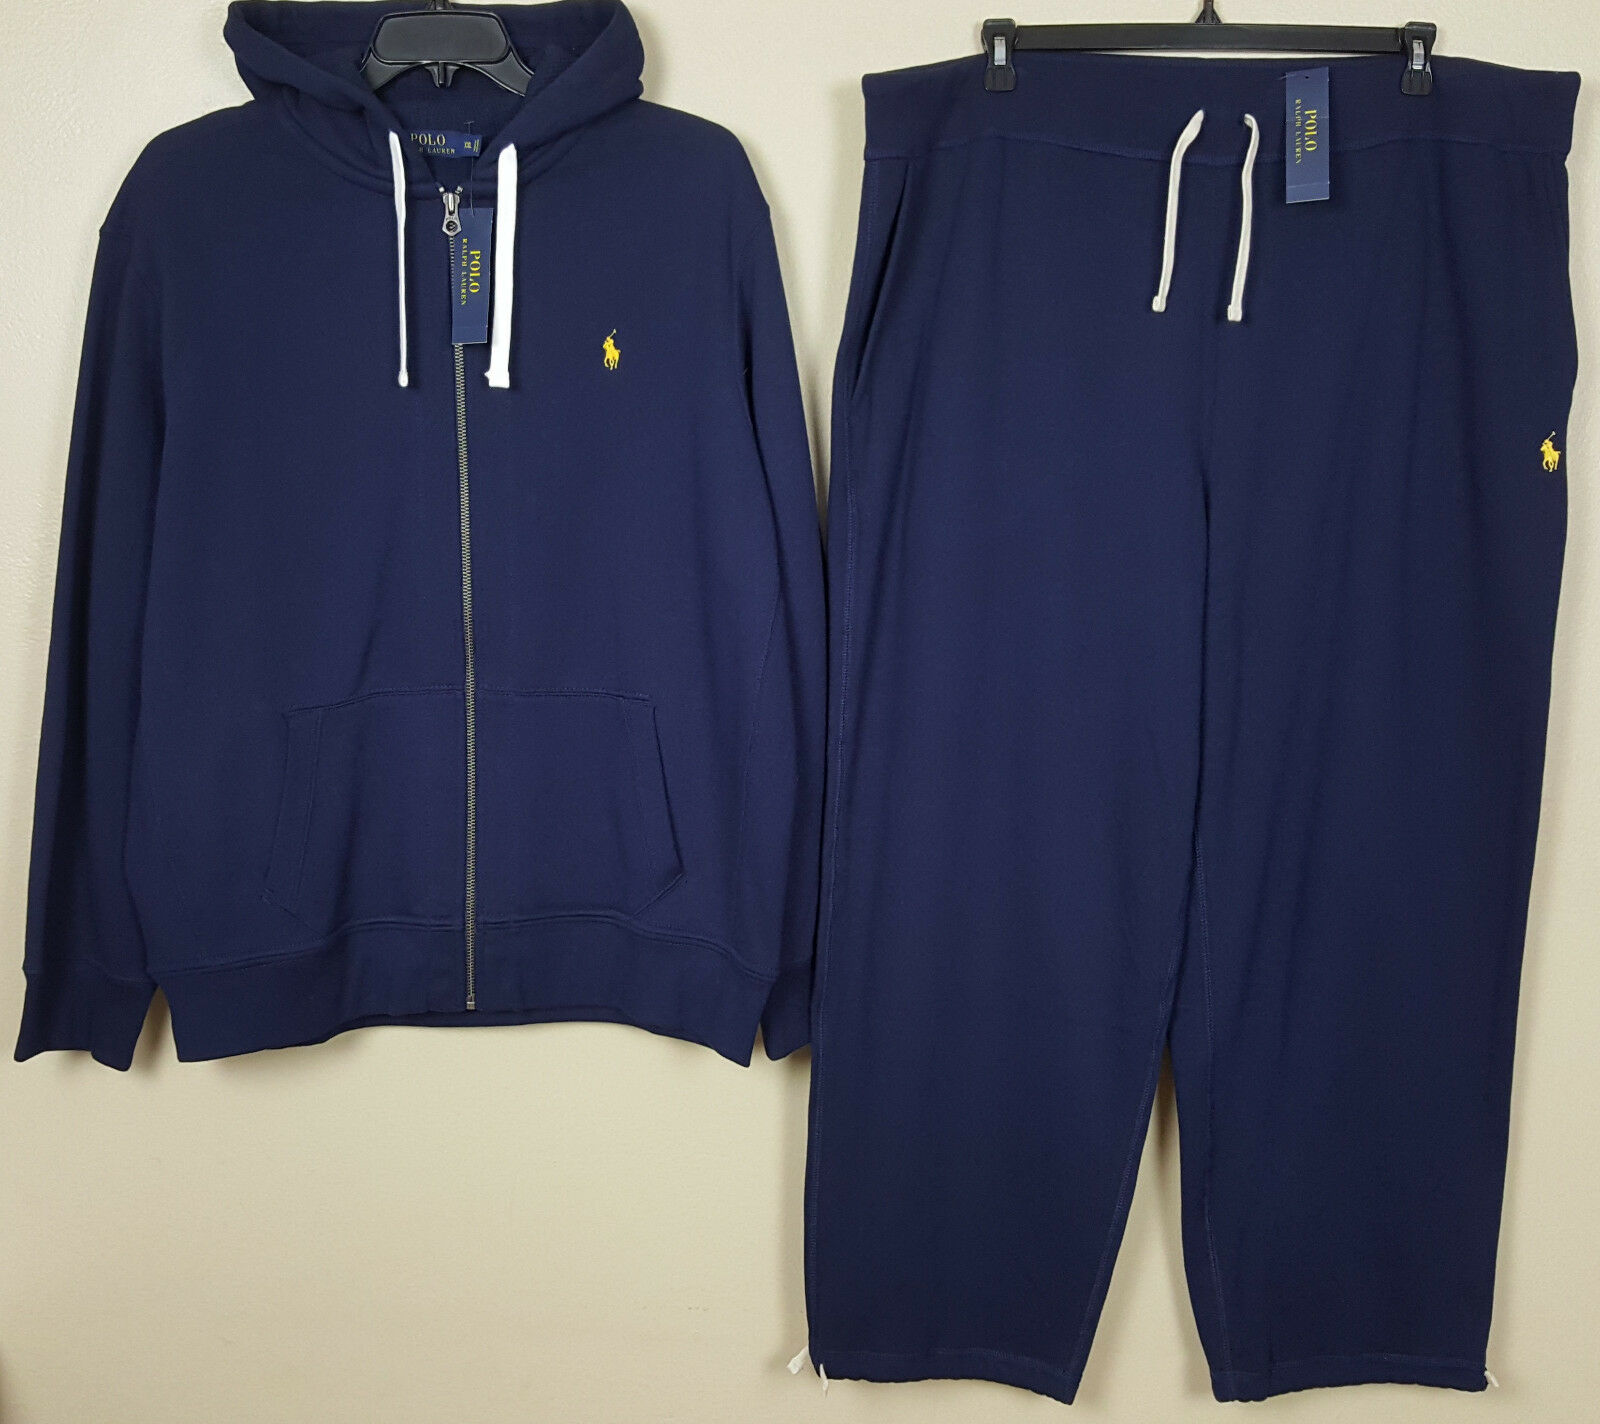 110f4d1c9 POLO RALPH LAUREN SWEATSUIT + PANTS NAVY blueE YELLOW NEW (SIZE 2XL) HOODIE  RARE nzivgo4933-Tracksuits   Sets